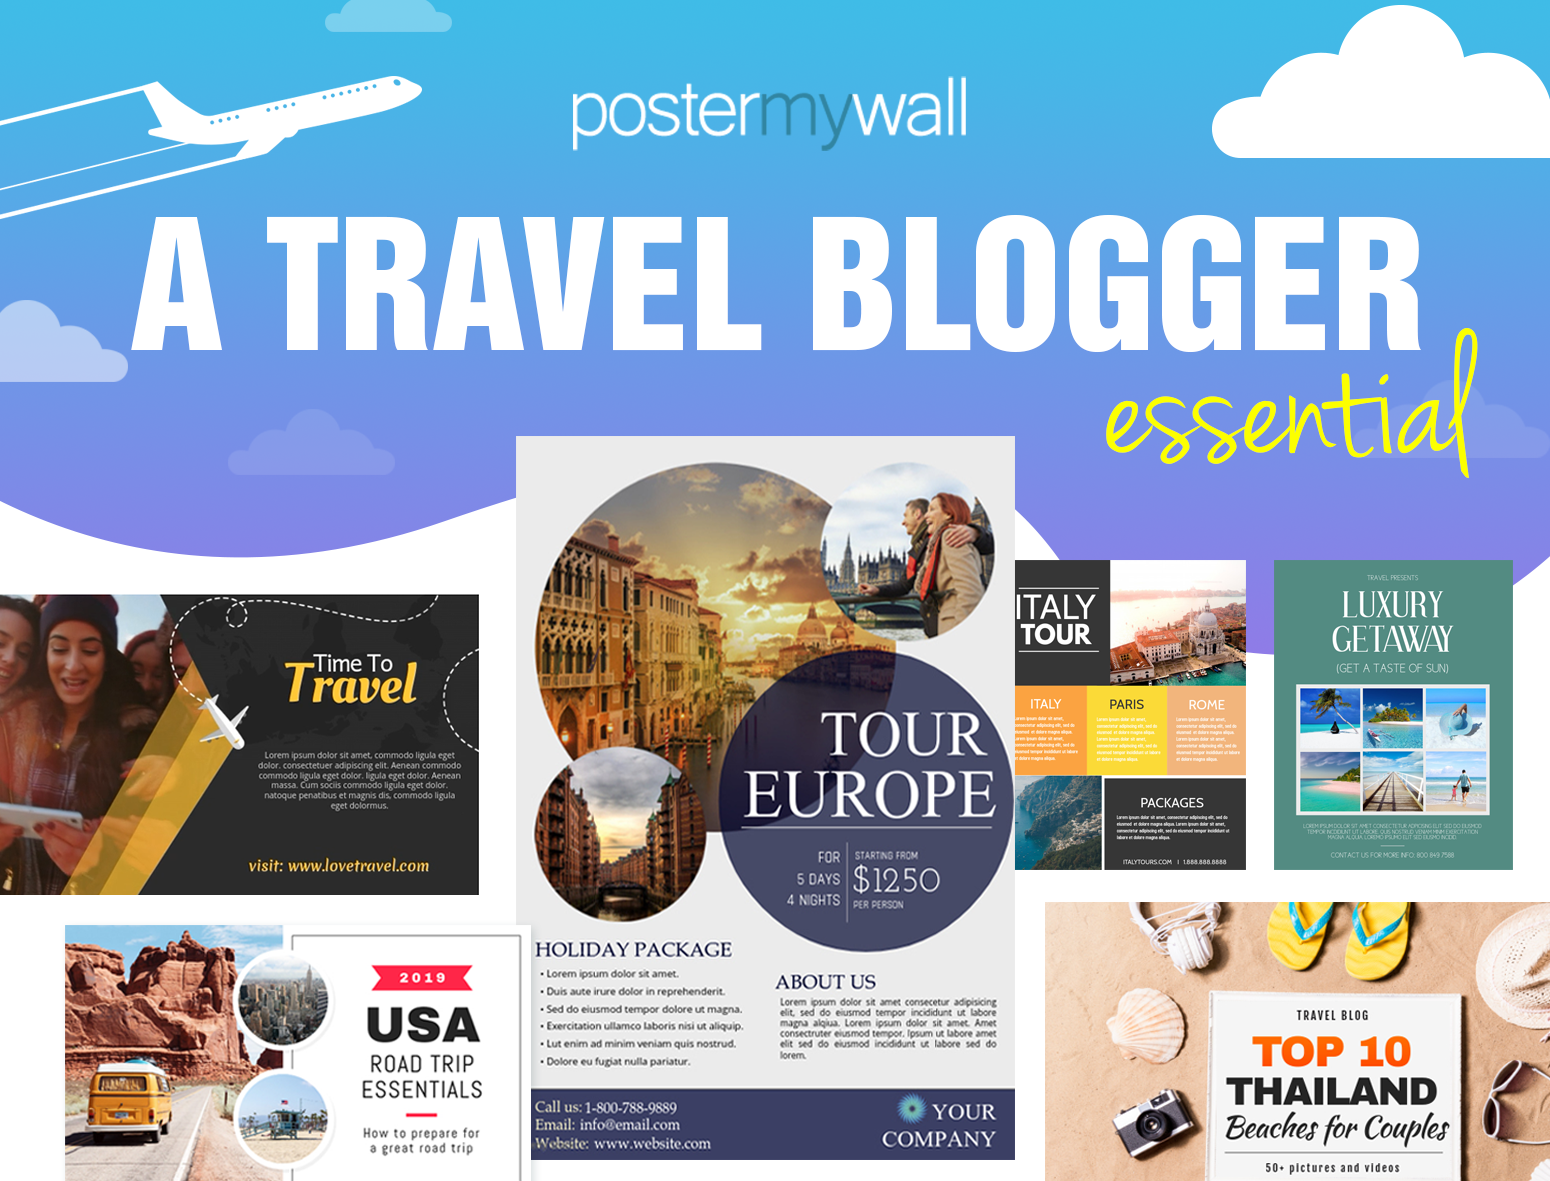 PosterMyWall---A-Travel-Blogger-Essential